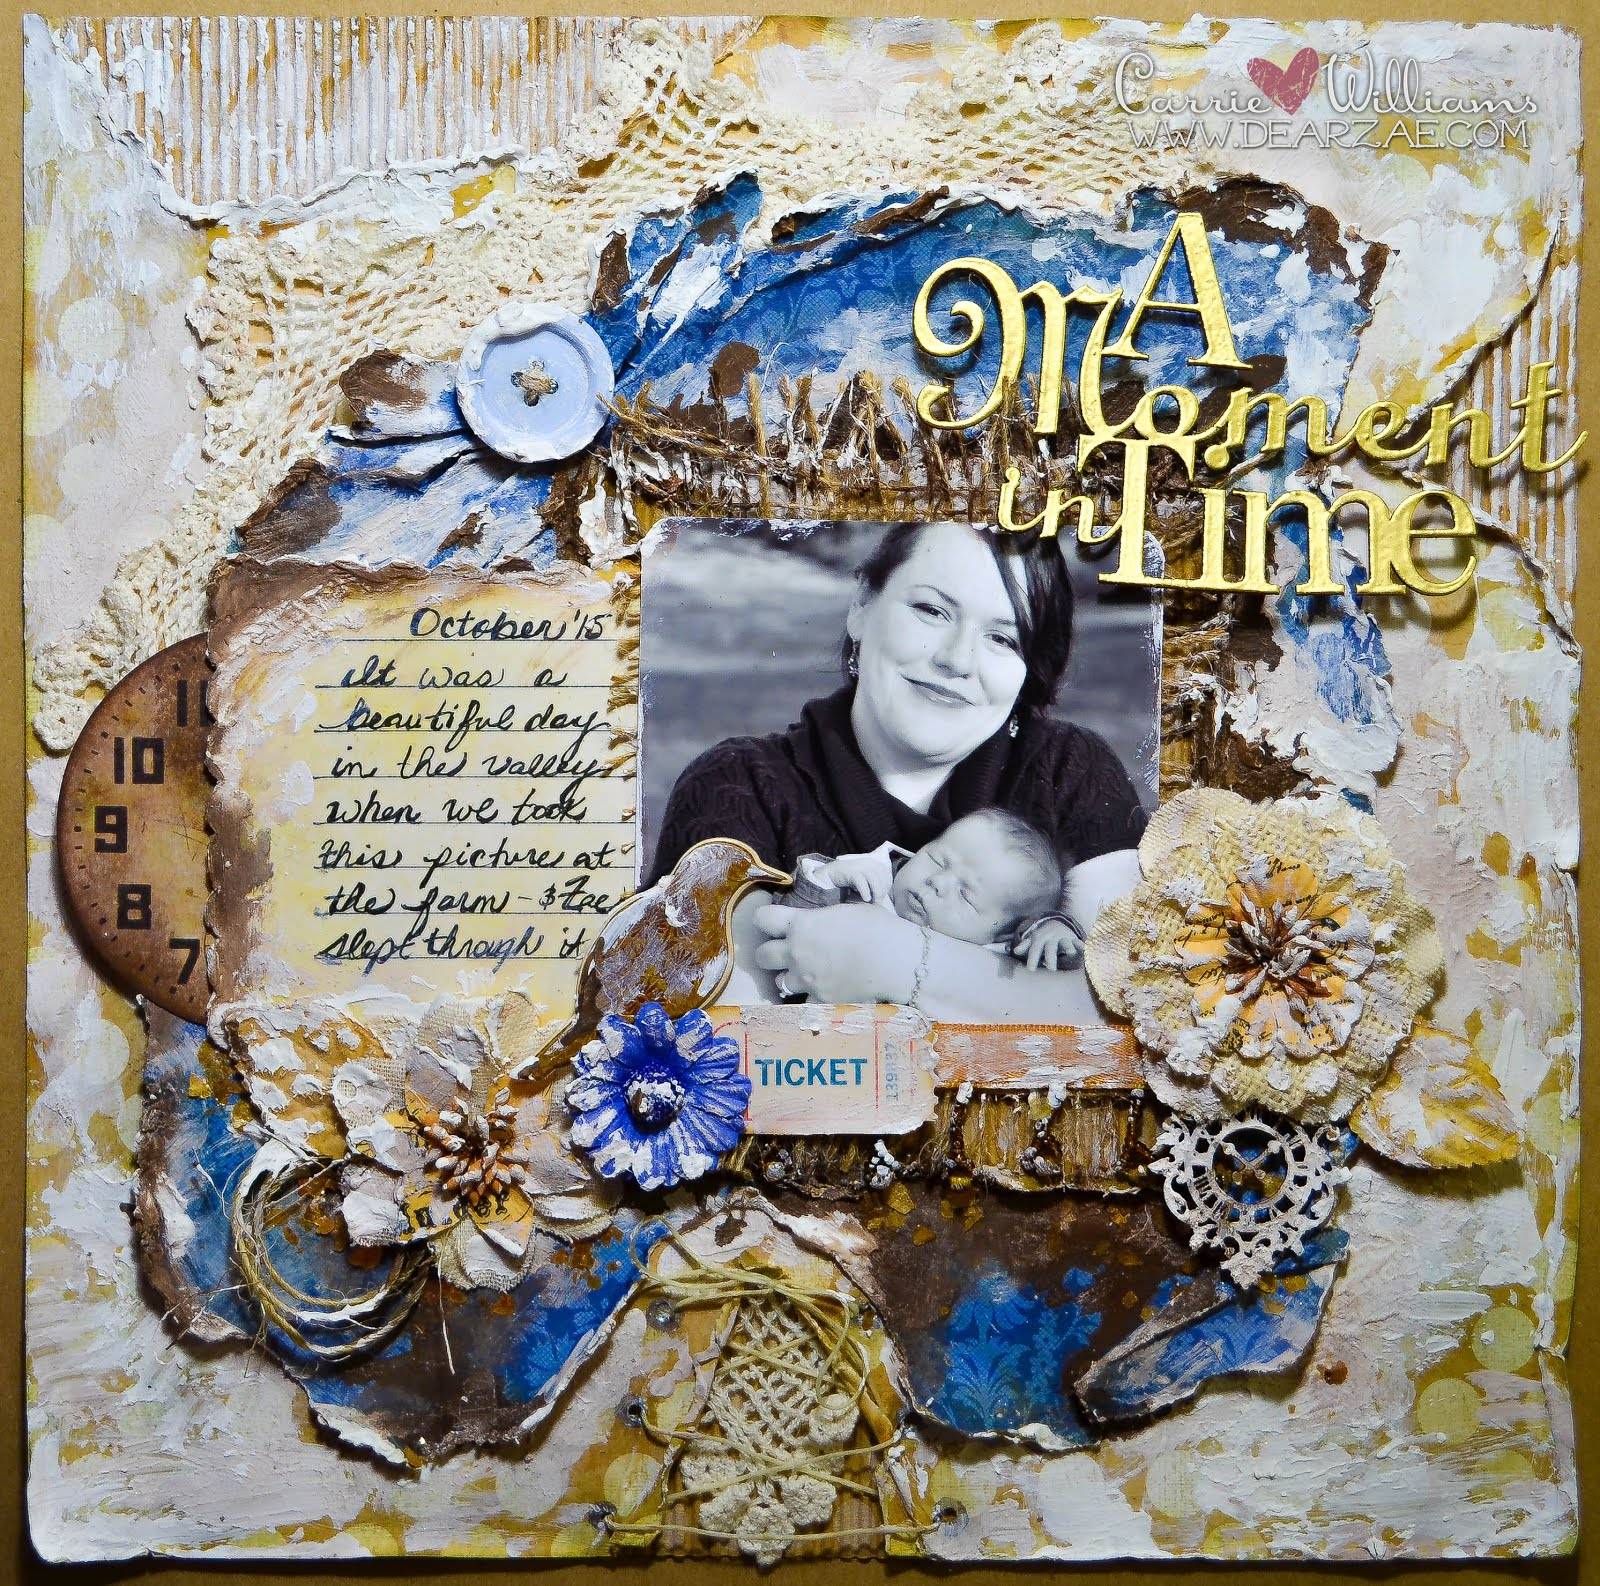 Rustic mixed media scrapbook layout in blue and beige with texture paste, distress paint, mica flakes, burlap flowers, heat embossed Blue Fern Studios chipboard in a time theme.